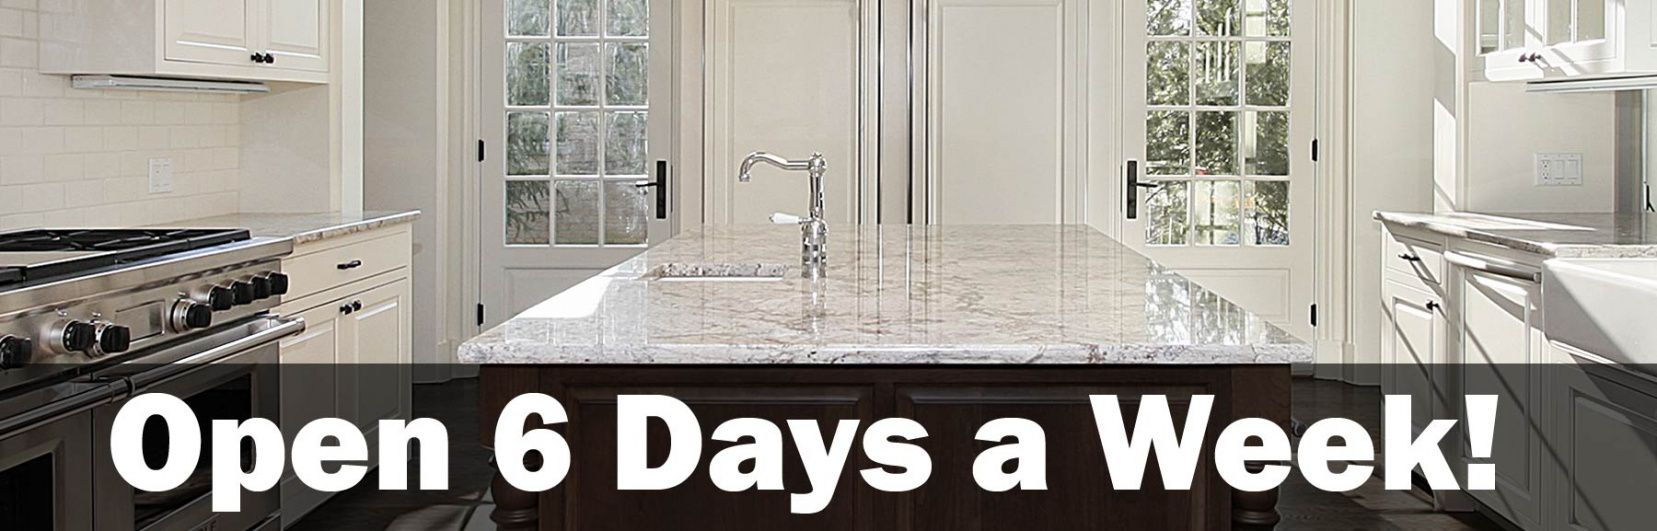 Pin by Erlangfahresi on granite countertops colors | Cheap ...